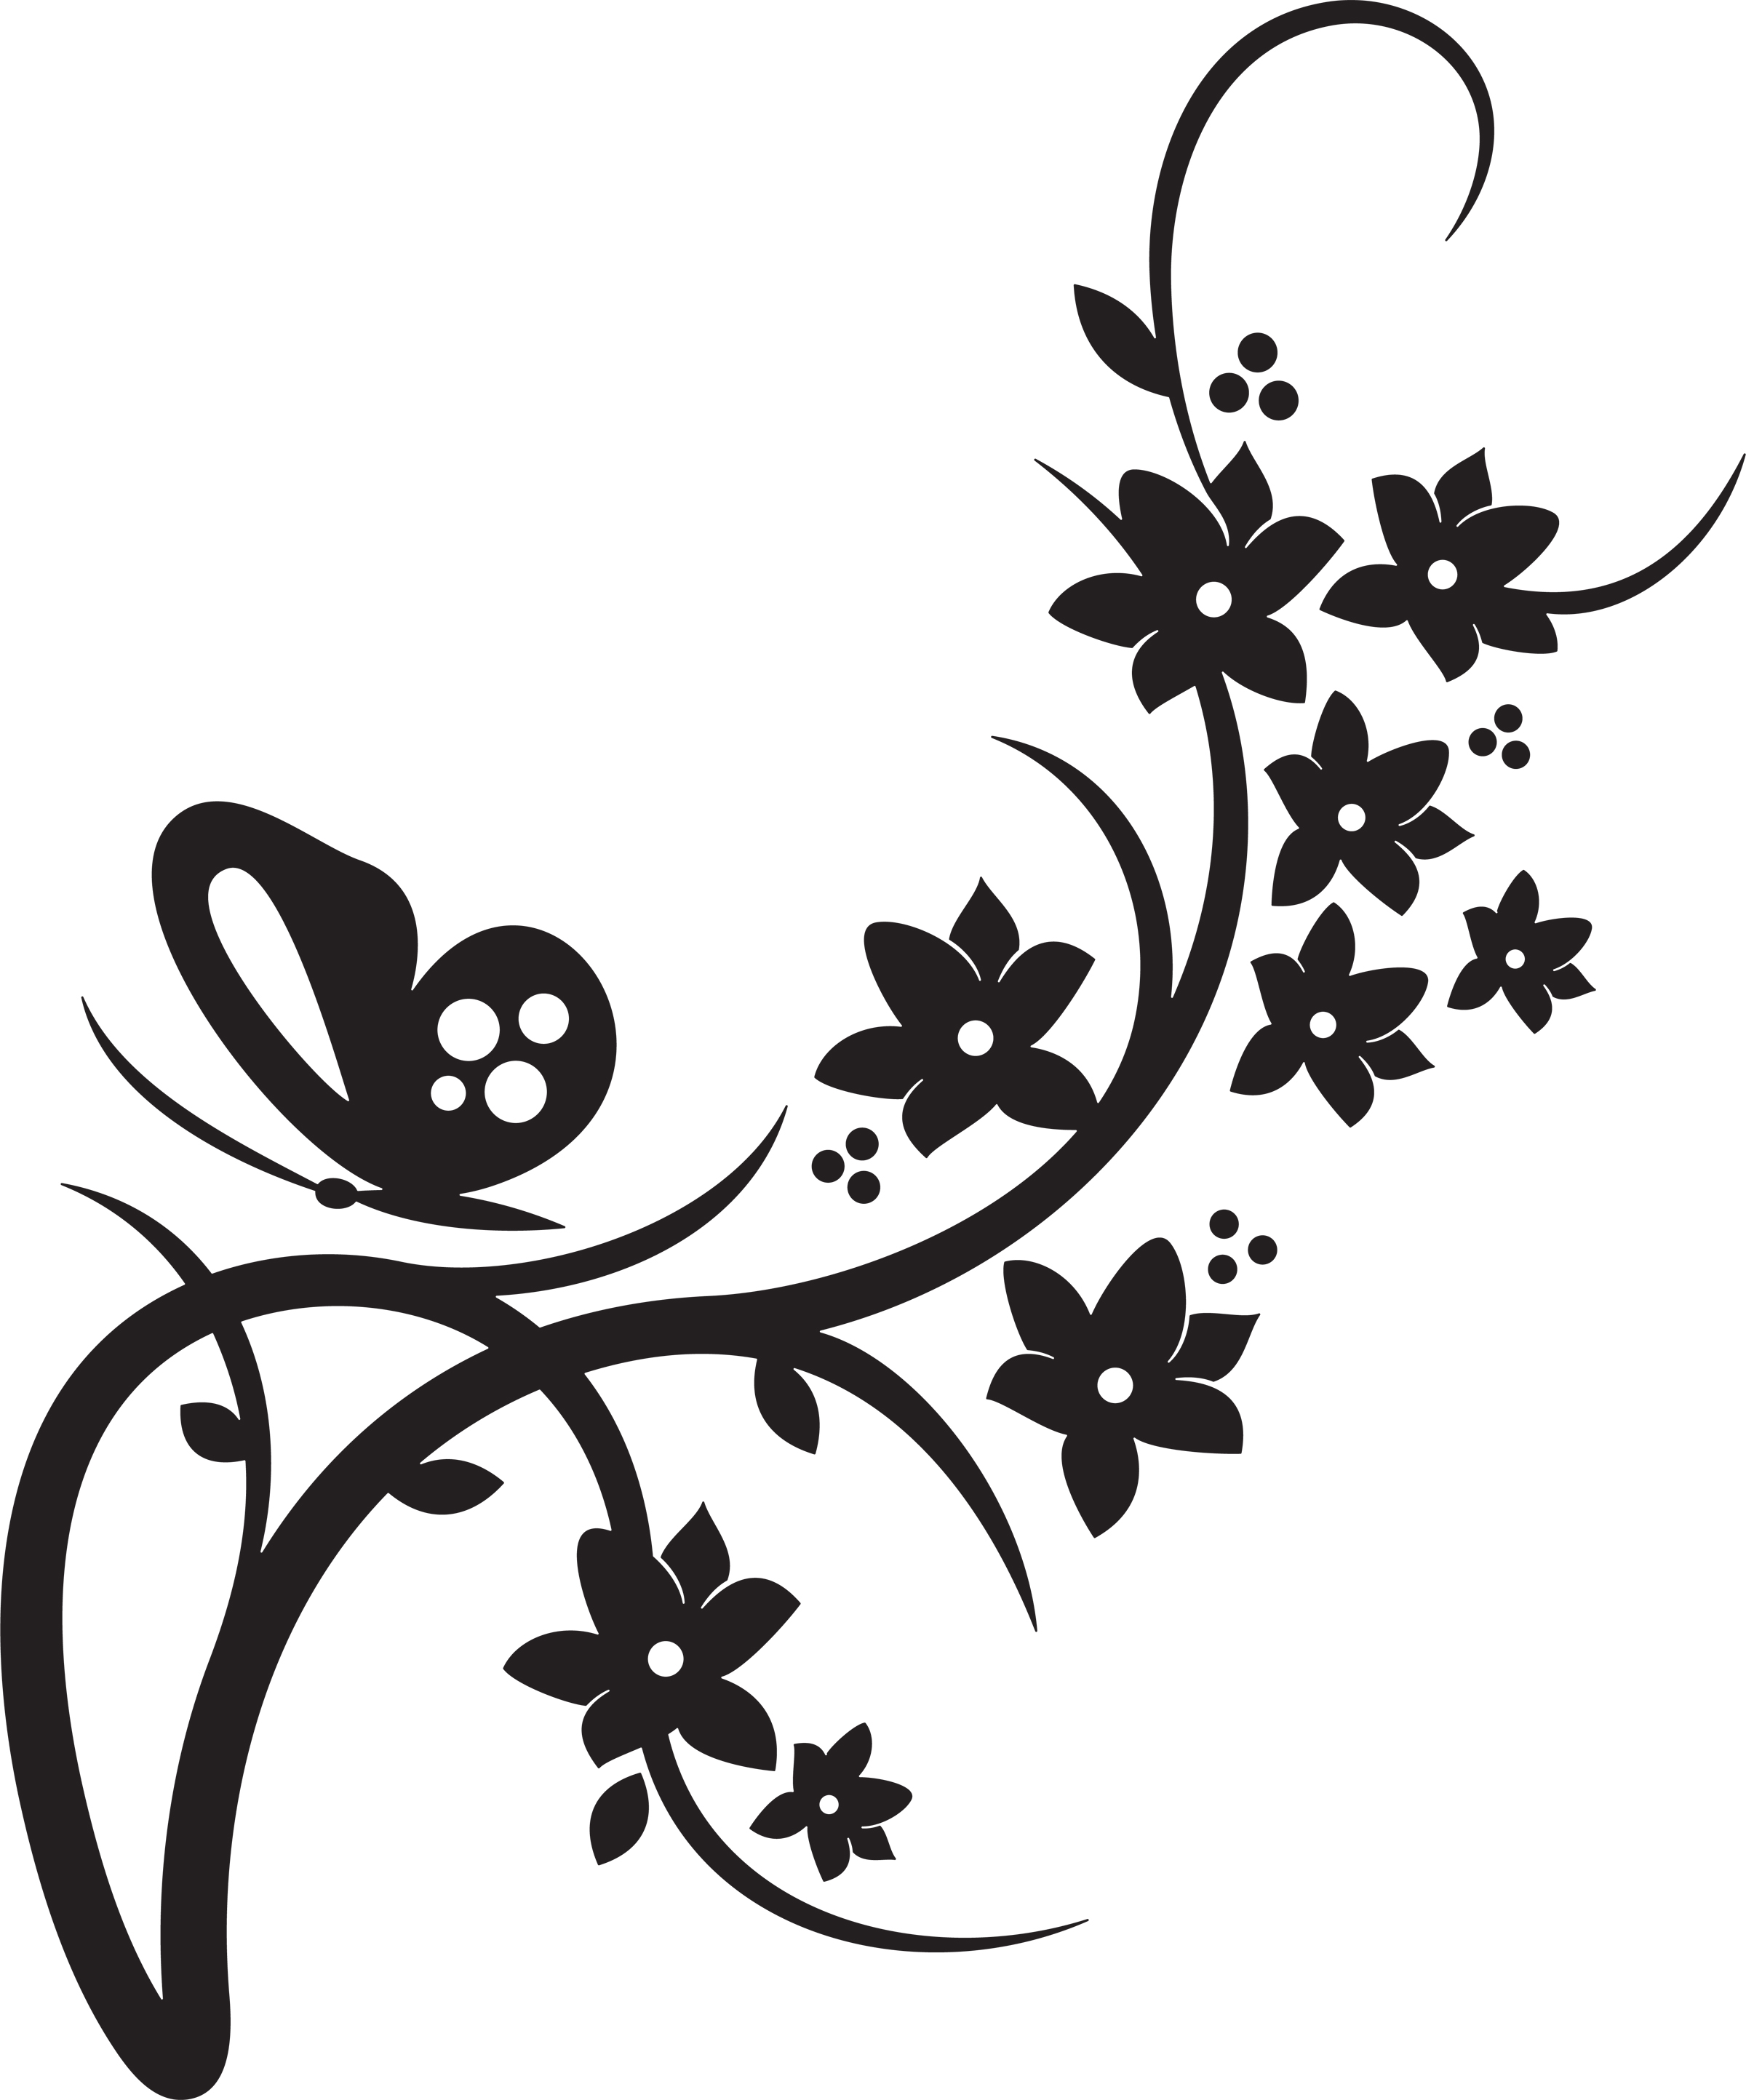 Butterfly drawings black and white clipart best for Autocollant mural